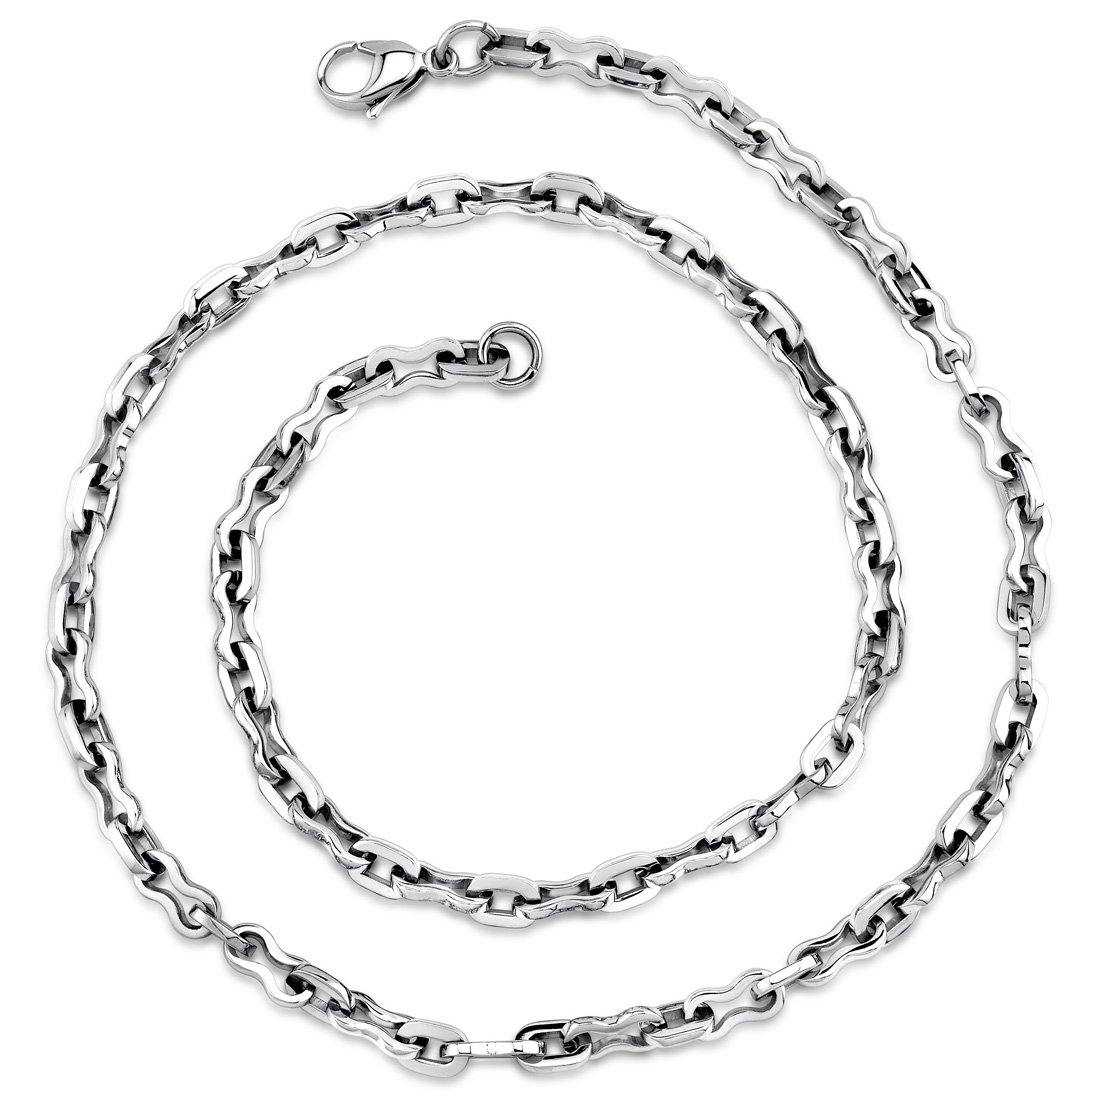 Peora Cascading Circles Silver-Tone Stainless Steel Mesh 18 inch Necklace